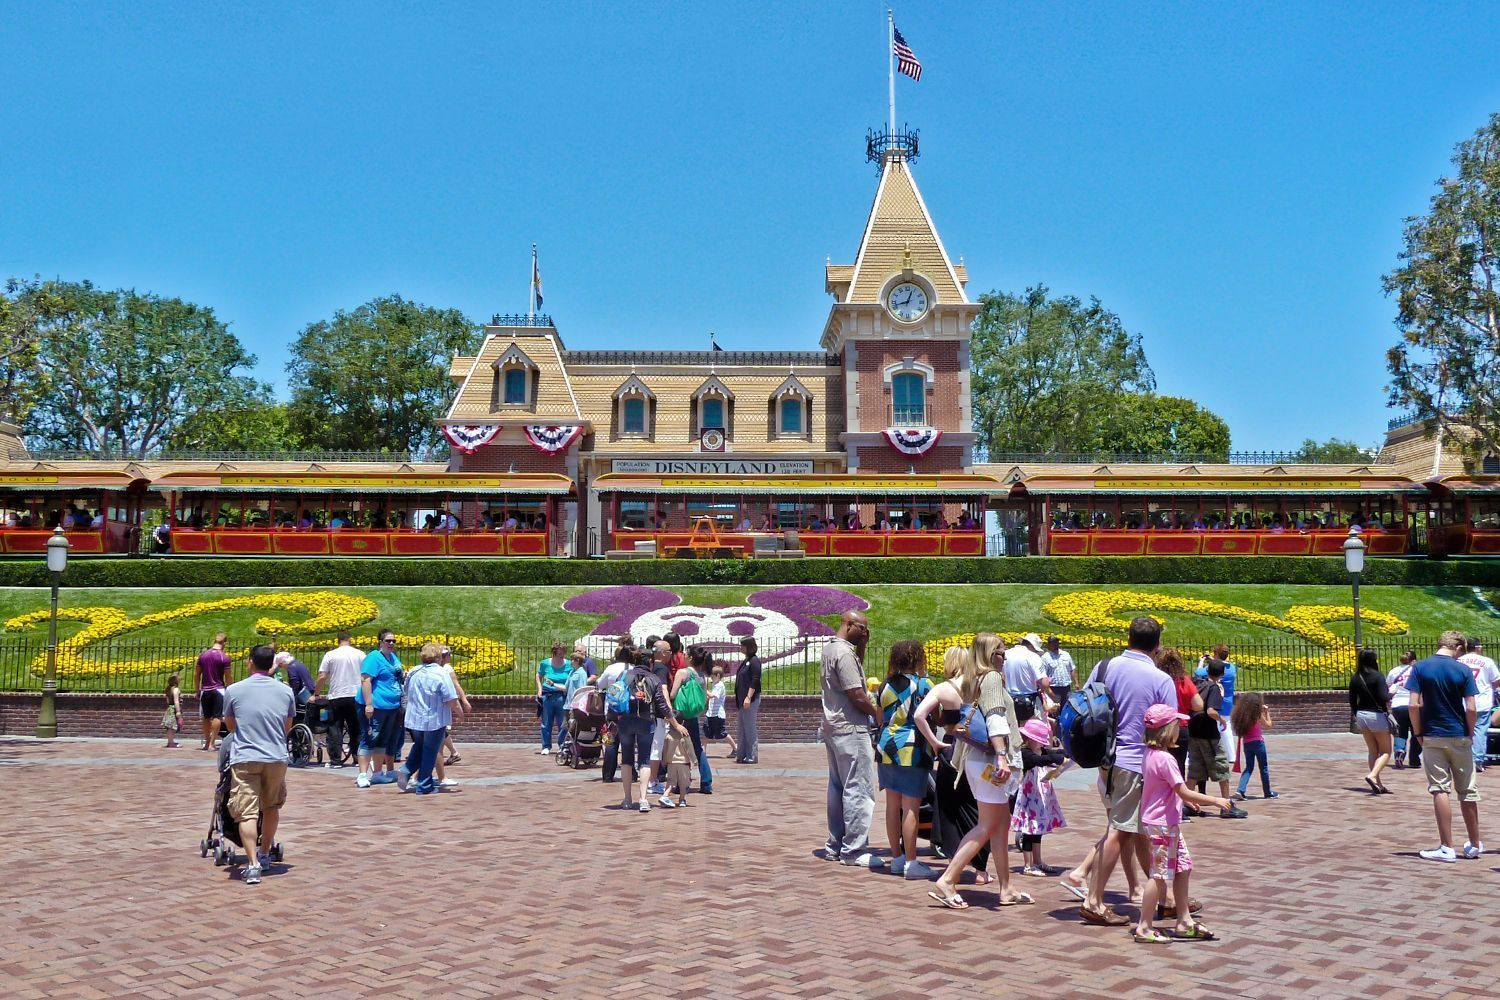 Disneyland tips for a happy visit. 51 ways to have even more fun at Disneyland, avoid pitfalls and find some secrets.